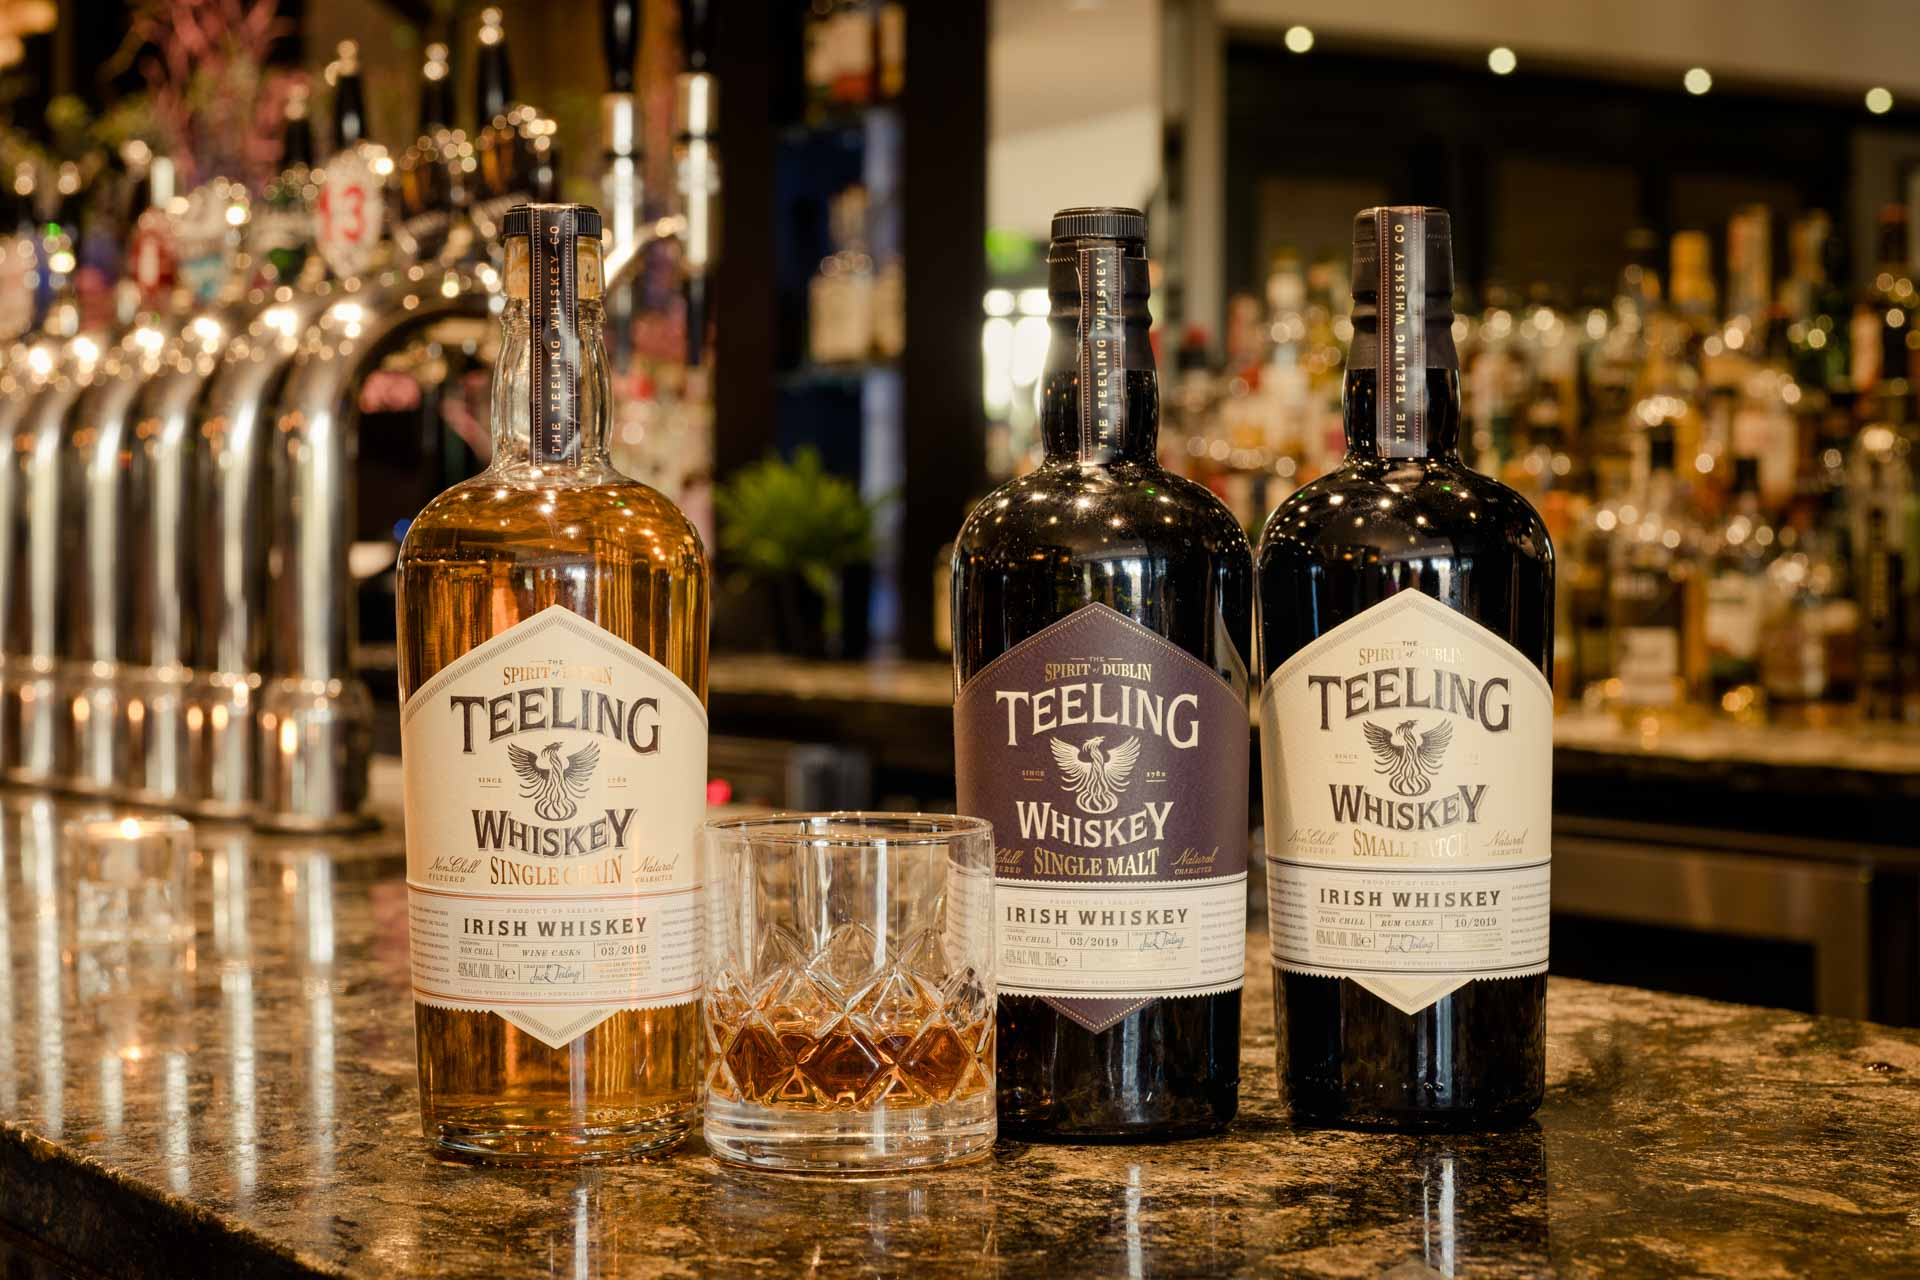 Teeling Whiskey served at the Iveagh Bar in The Ashling Hotel Dublin.